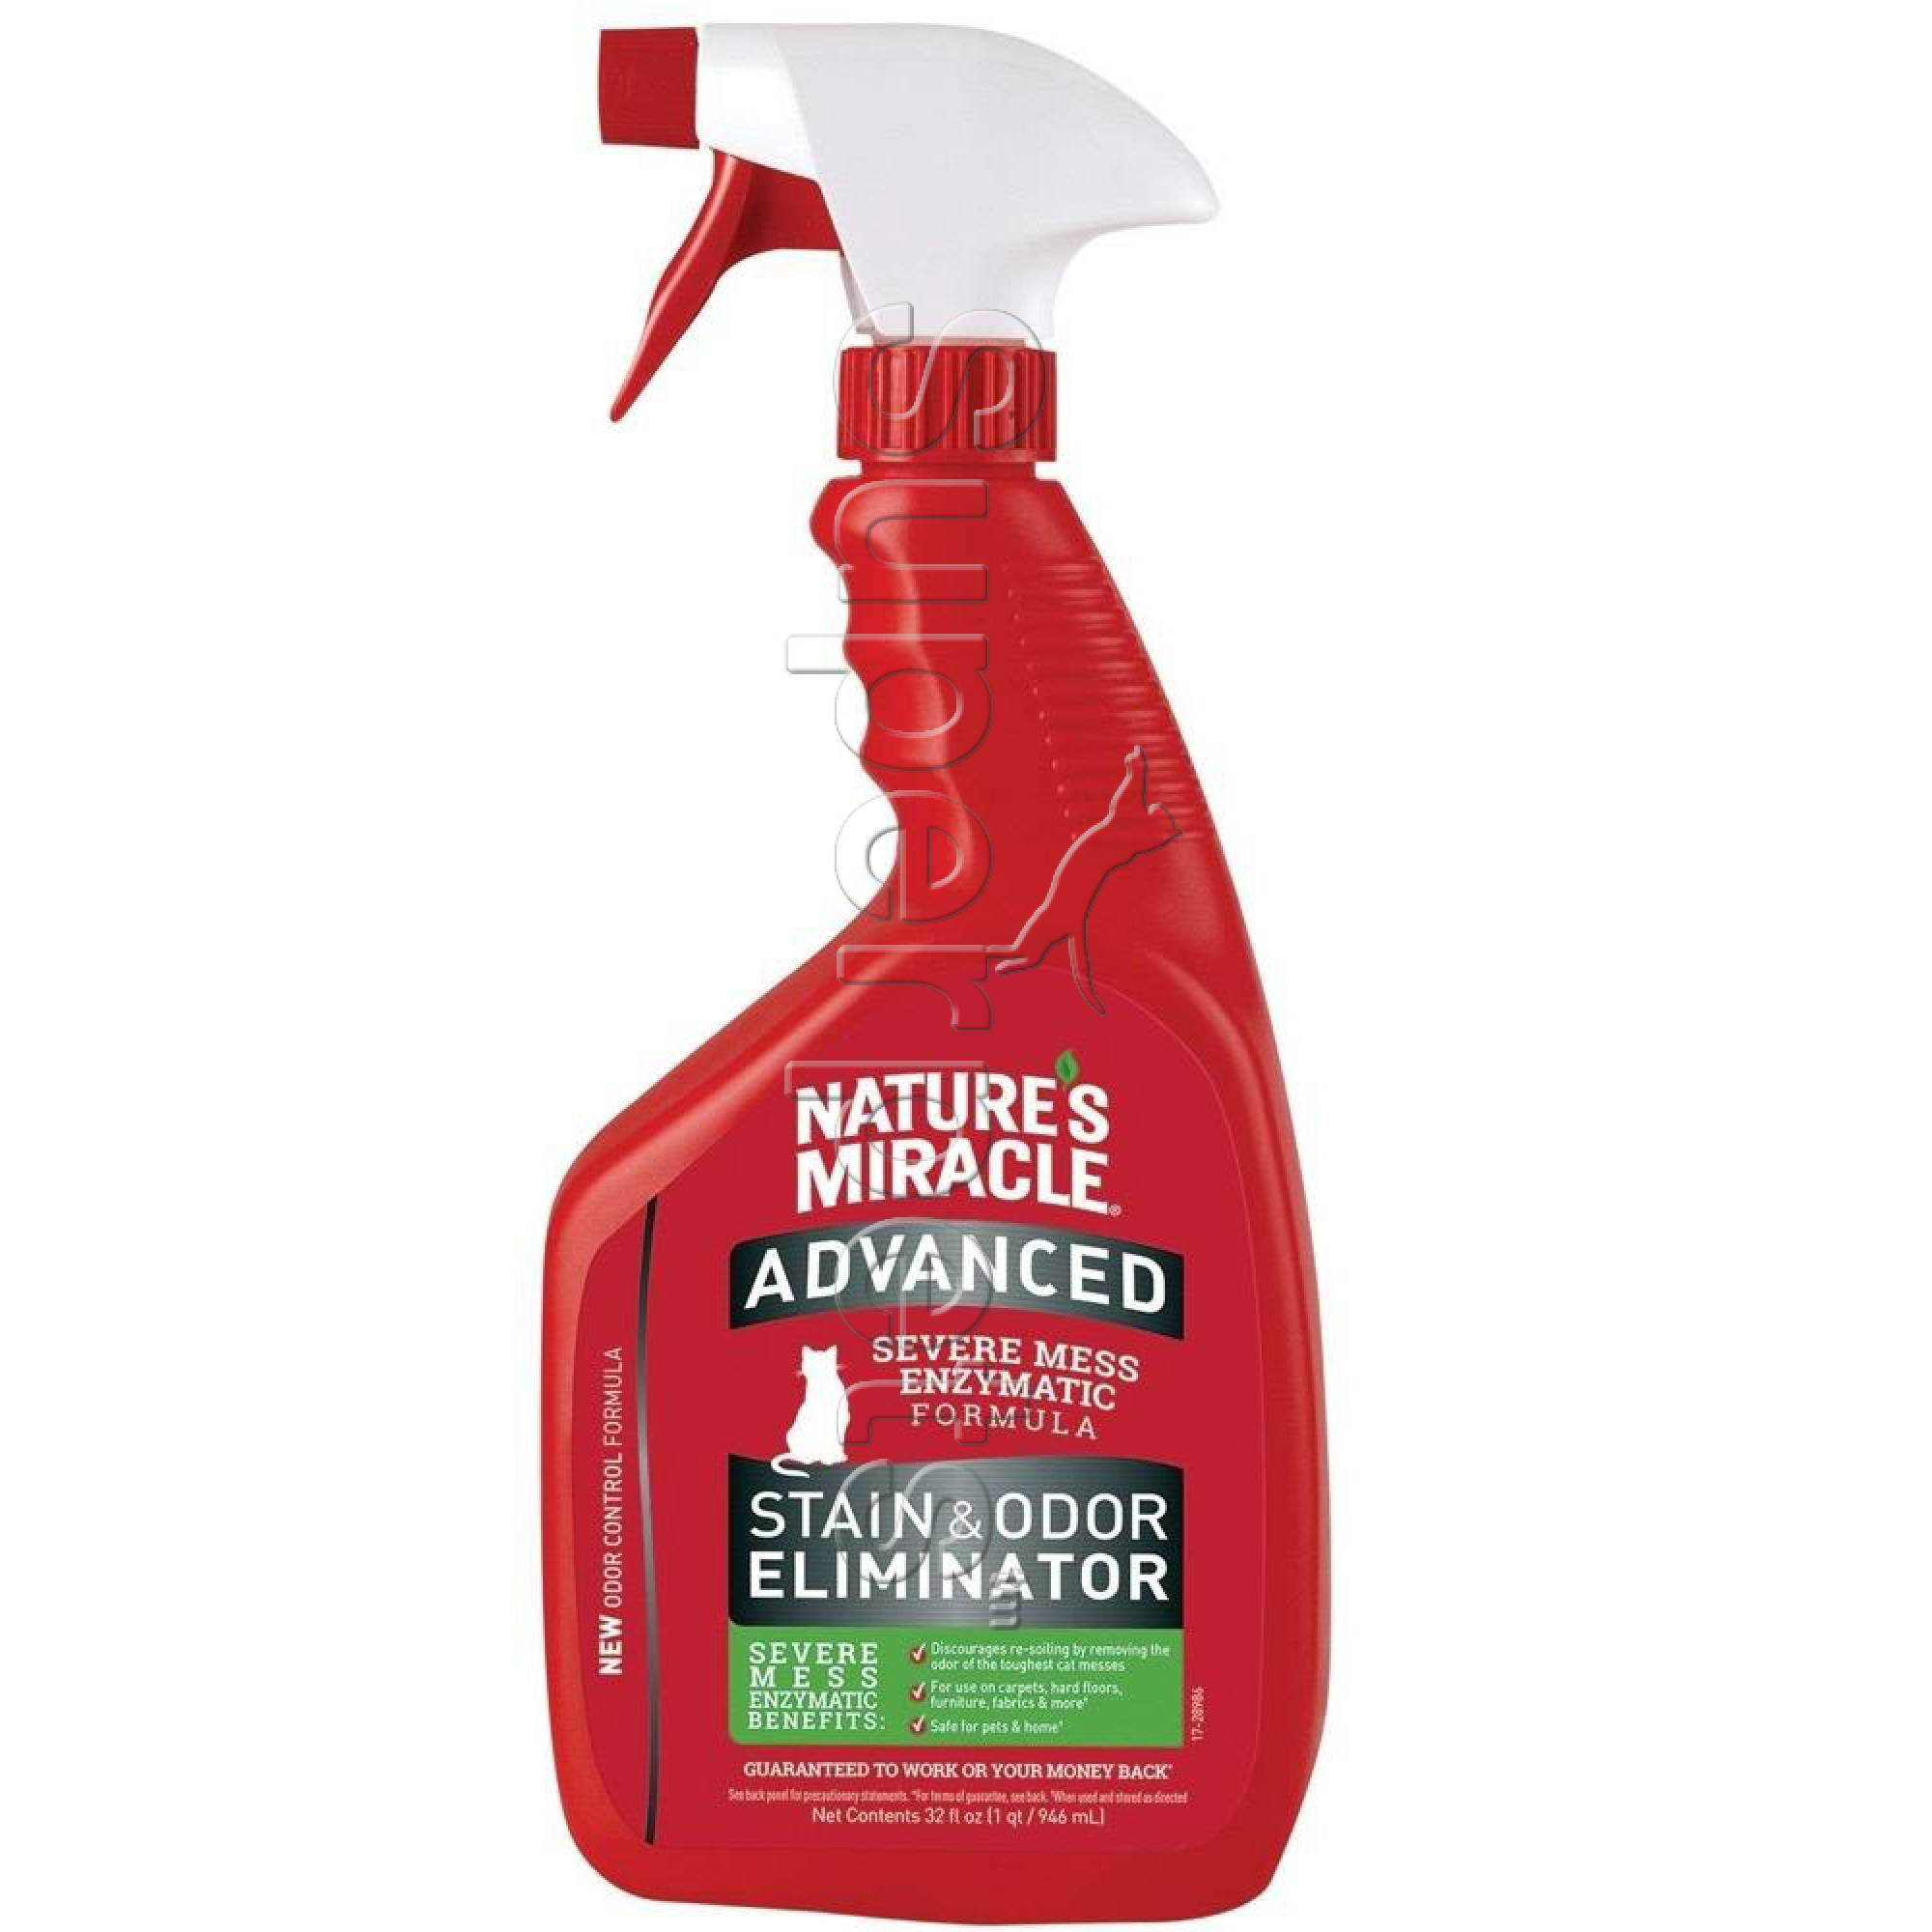 Natures Miracle Advanced Stain and Odor Eliminator Just for Cats spray 32oz (946ml)